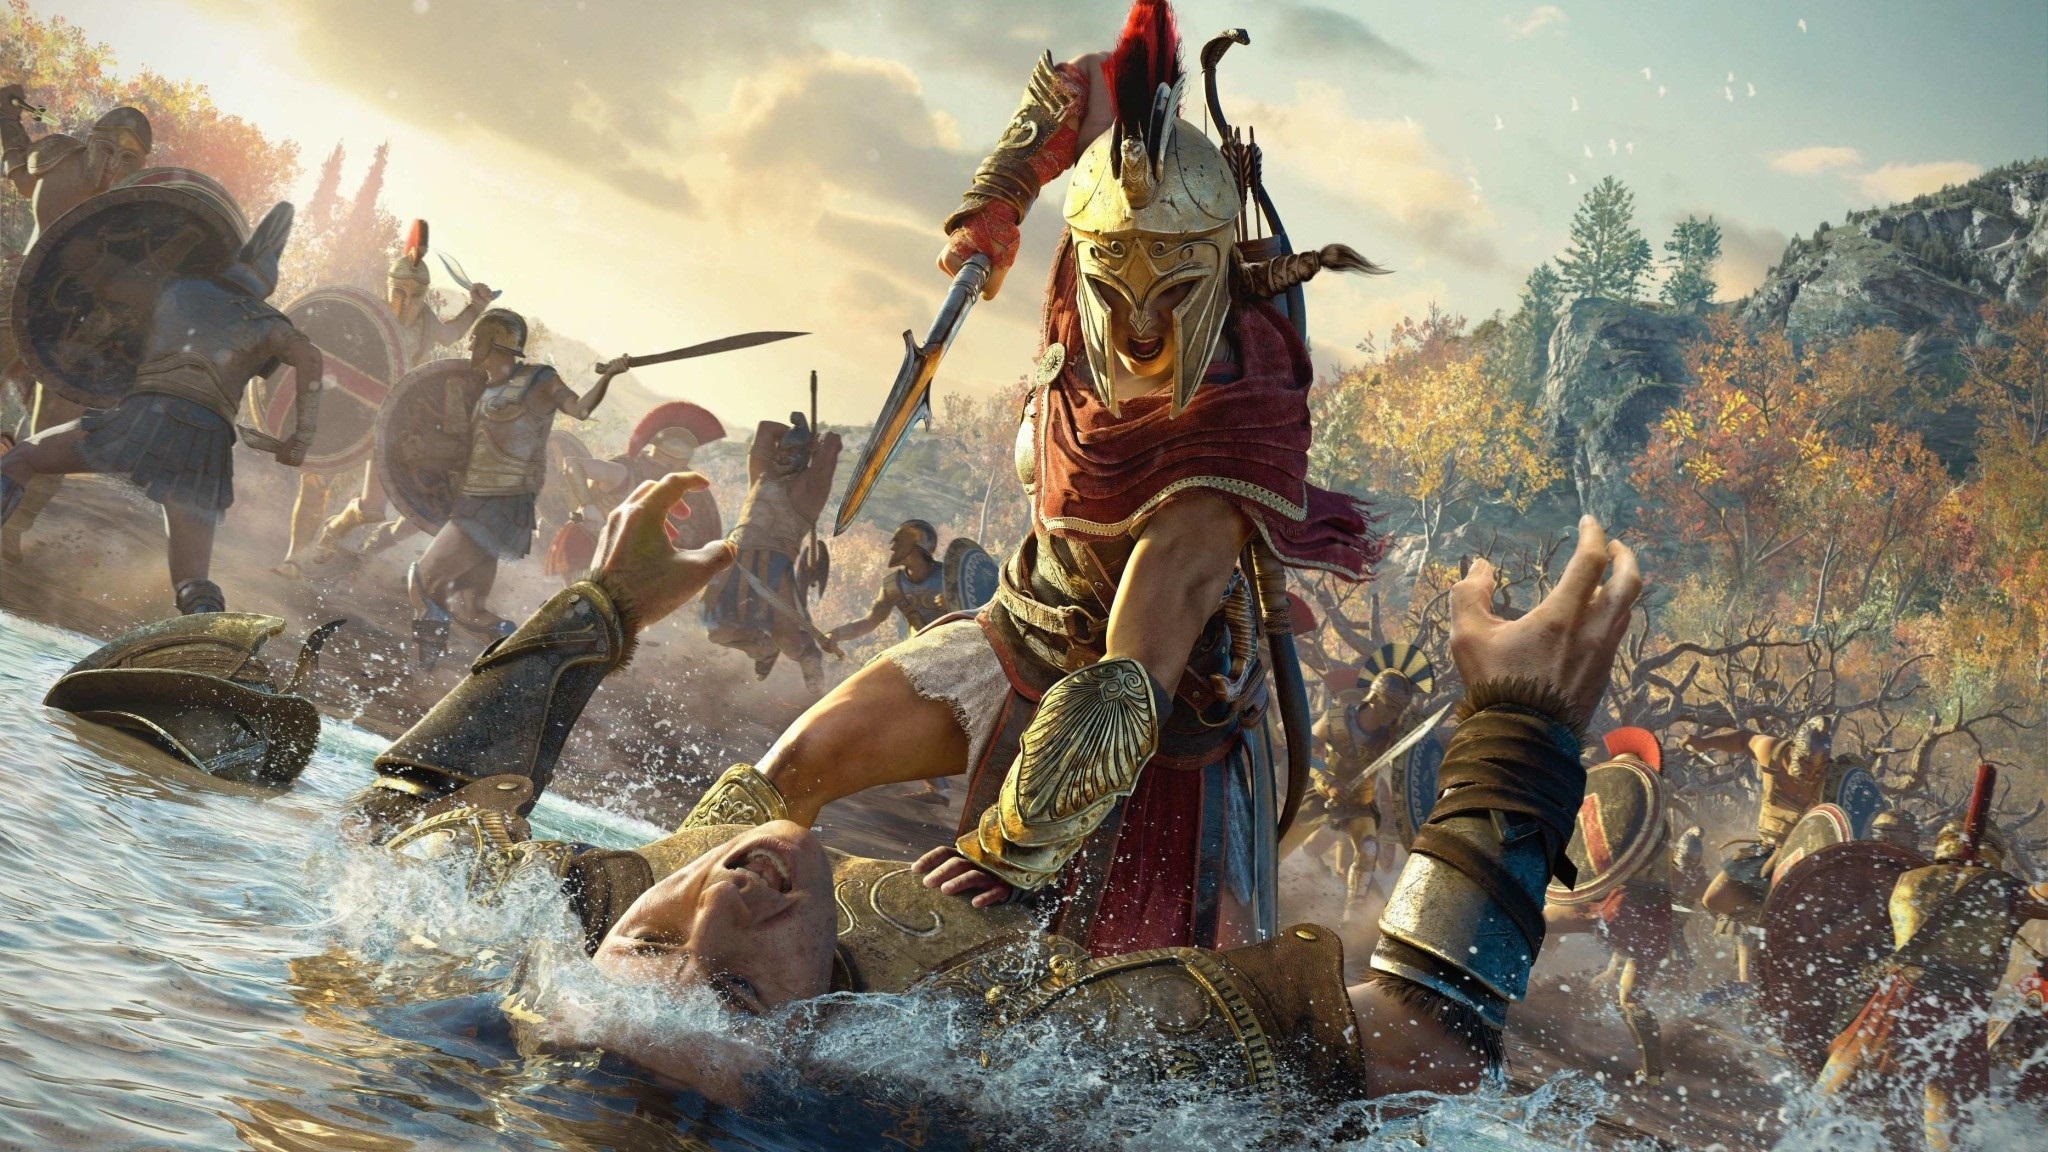 It Looks Like New Assassin S Creed And Far Cry Are On The Horizon